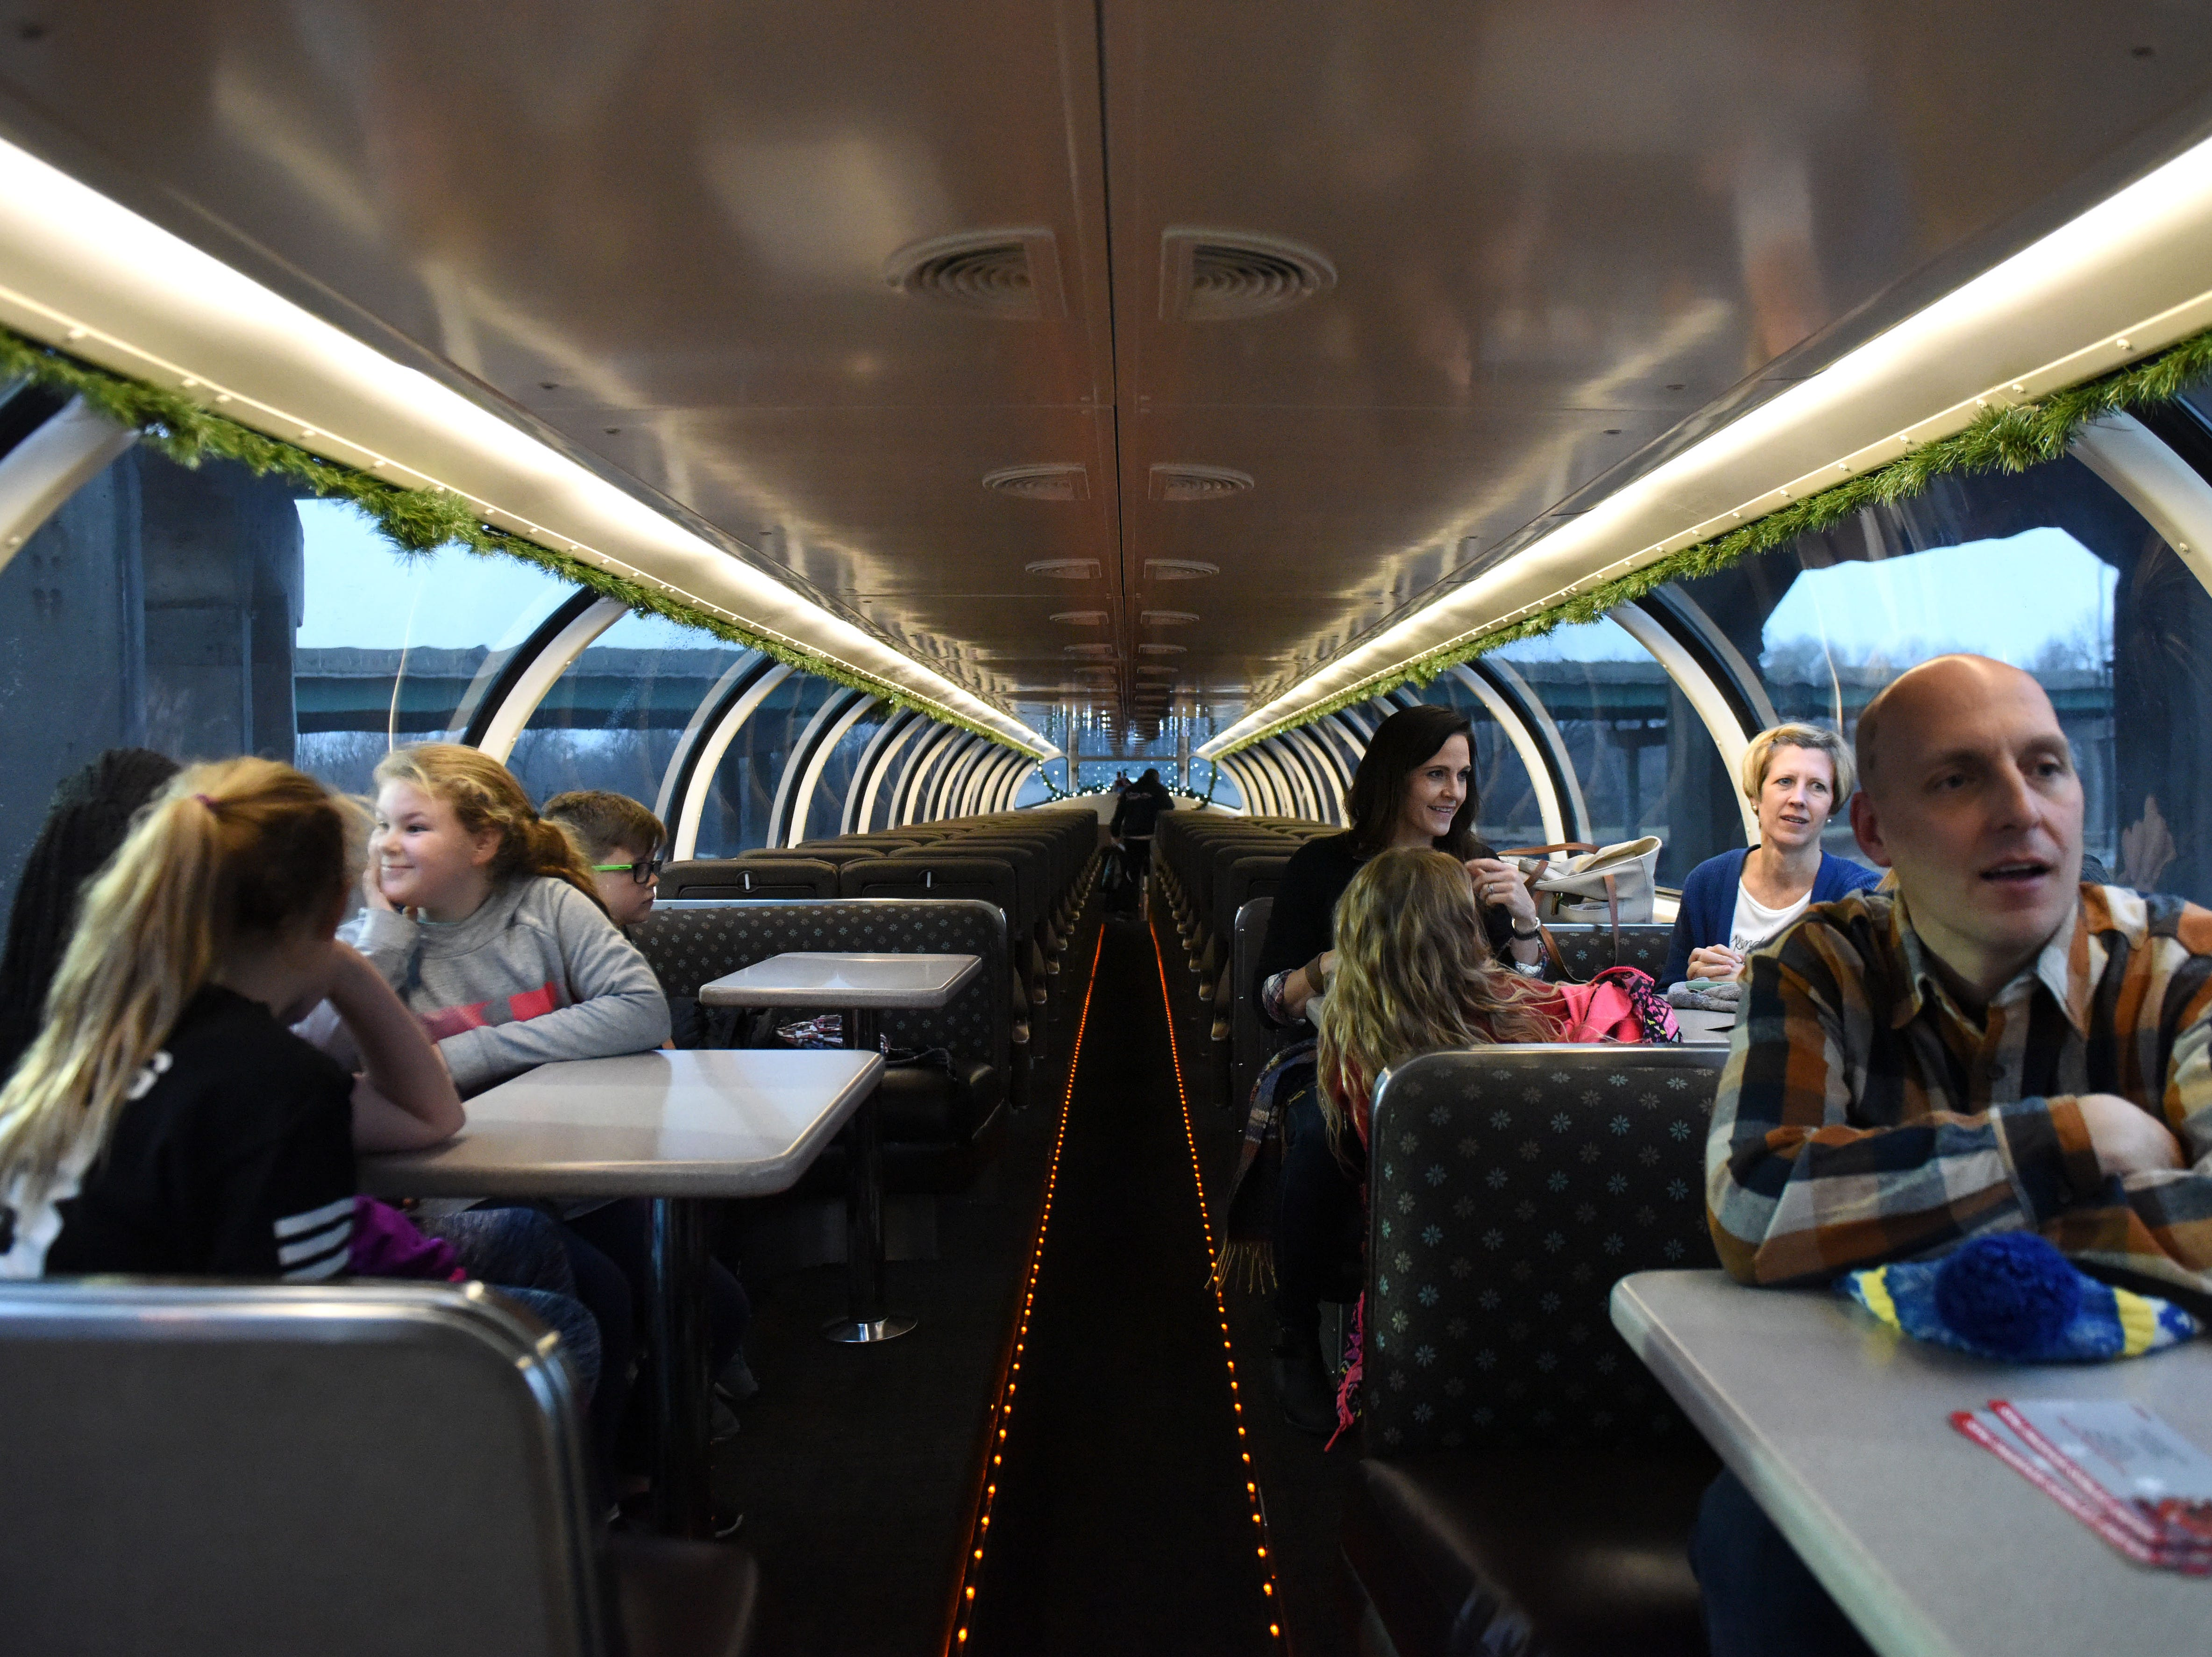 Families sit in the BNSF train in Sioux Falls, S.D., Thursday, Nov. 29, 2018.